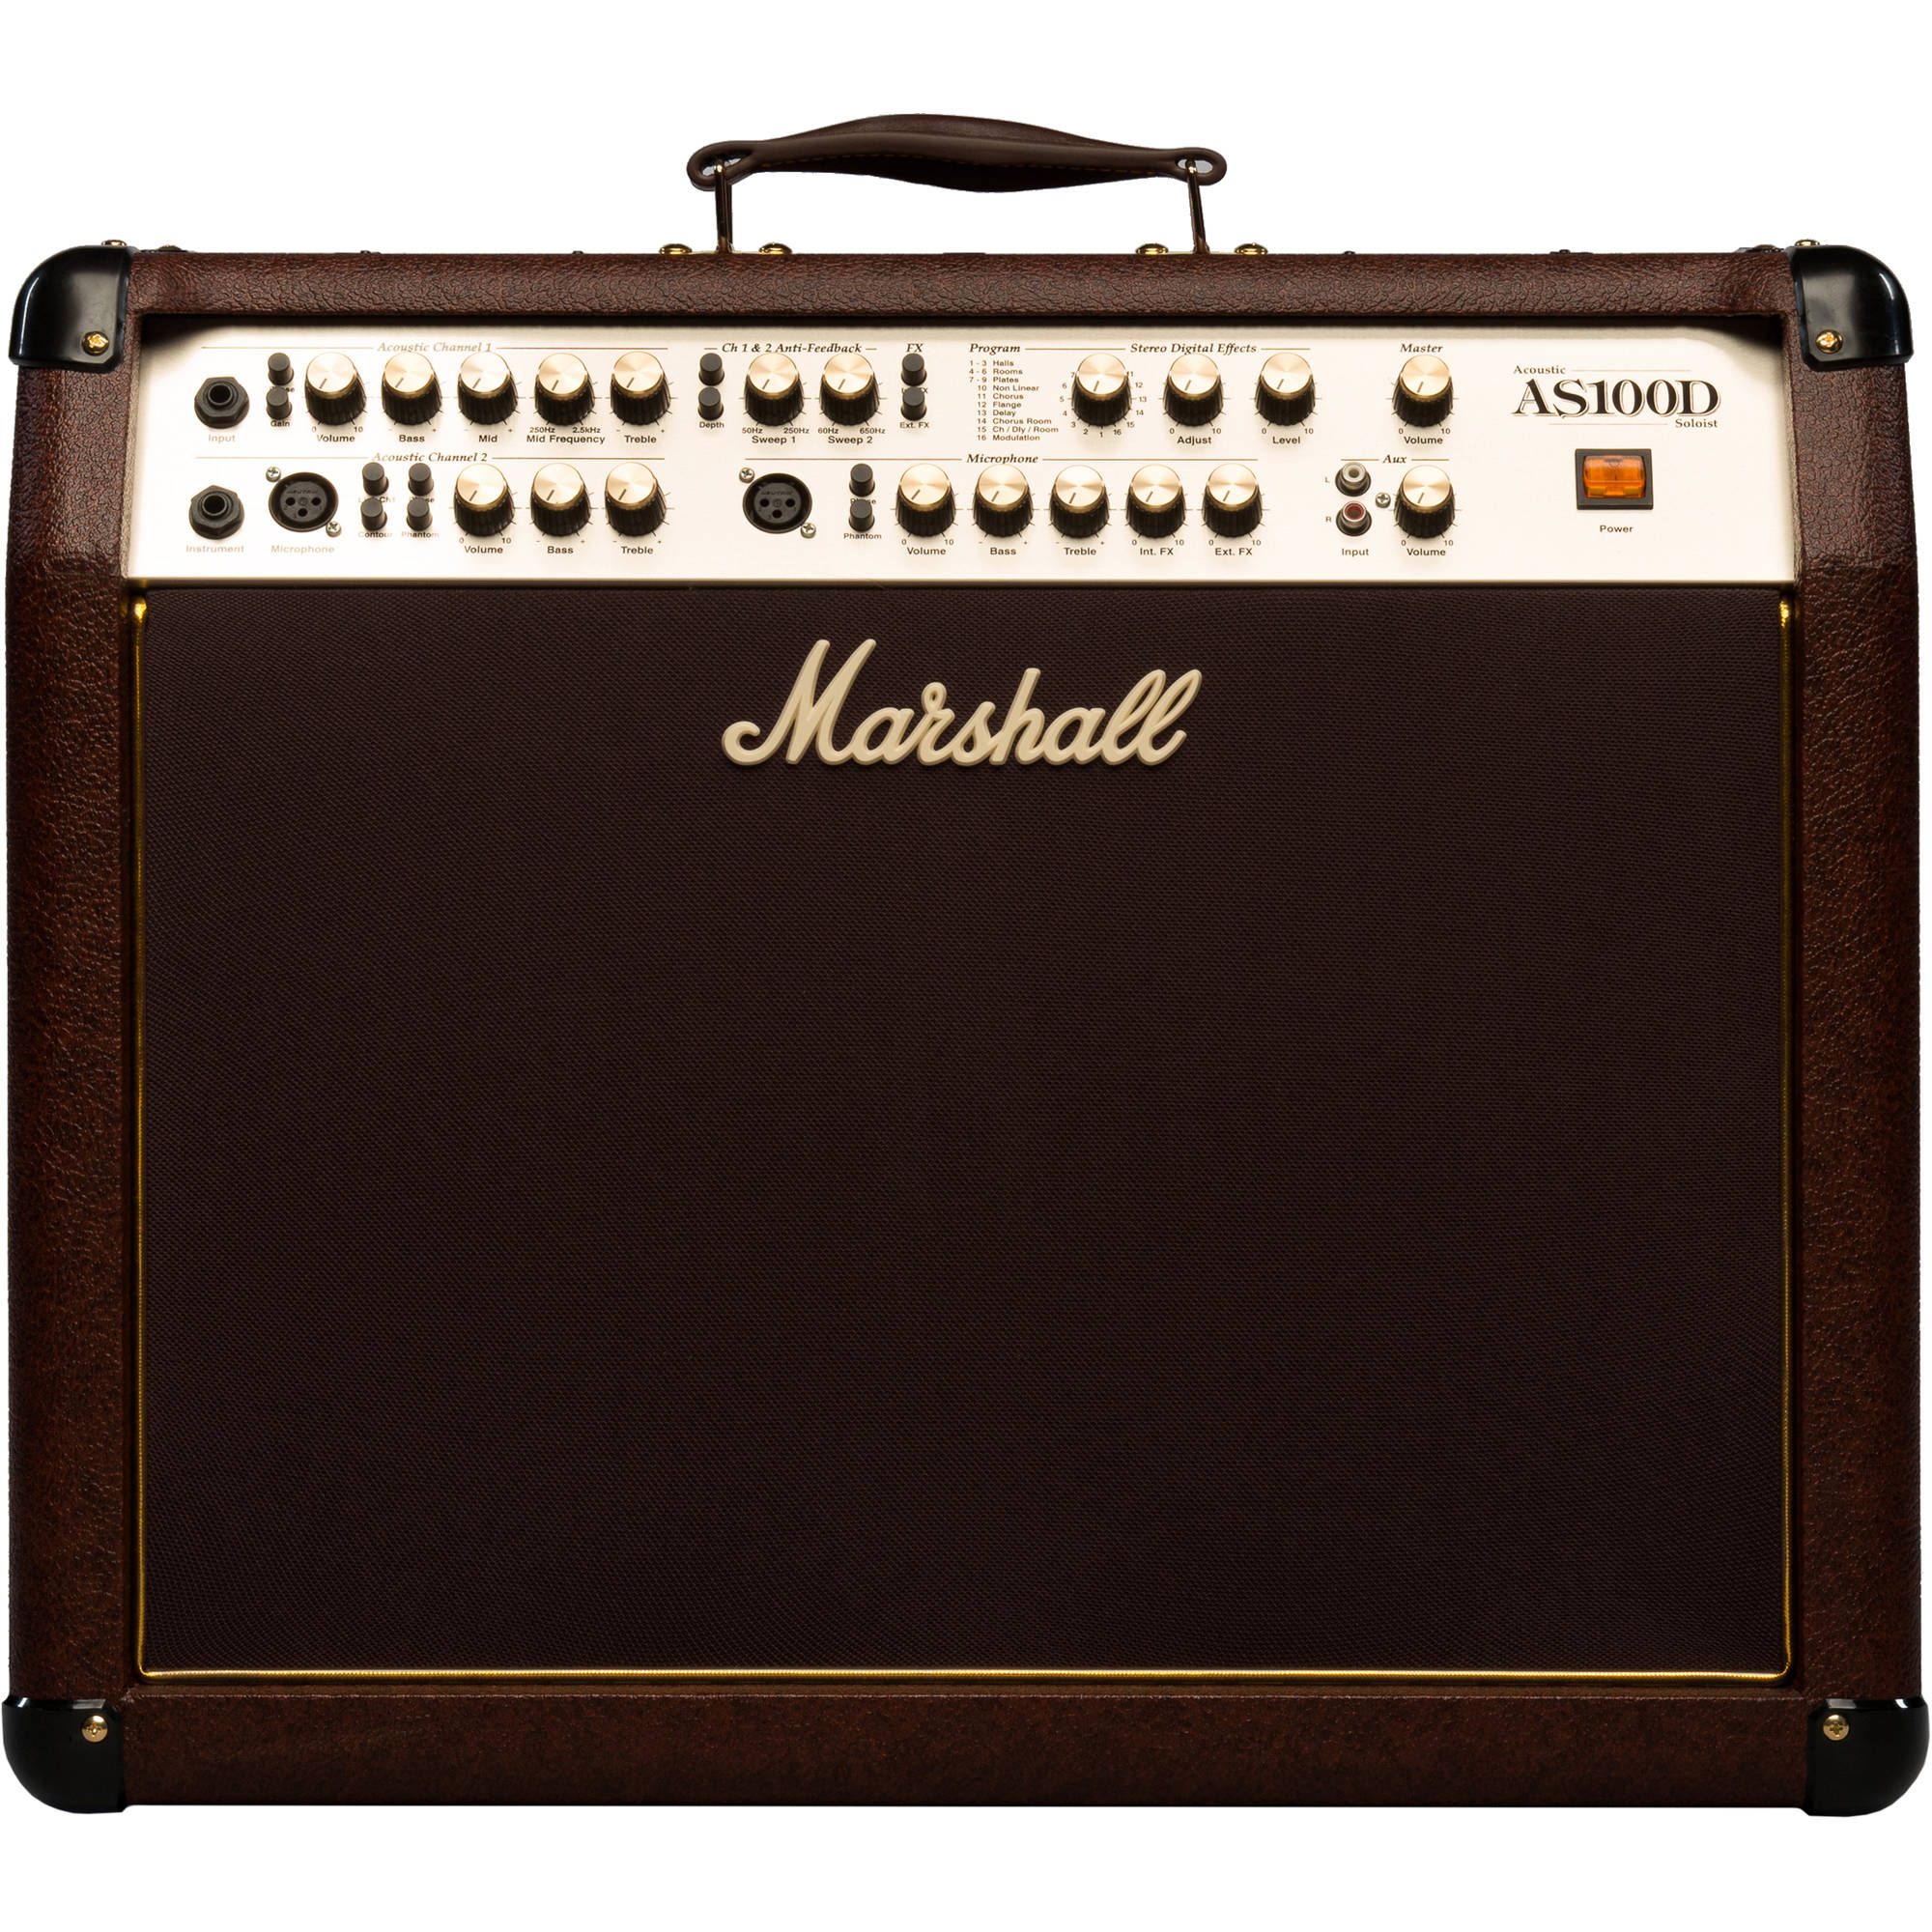 "Marshall AS100D 50+50-watt 2x8"" Acoustic Combo 